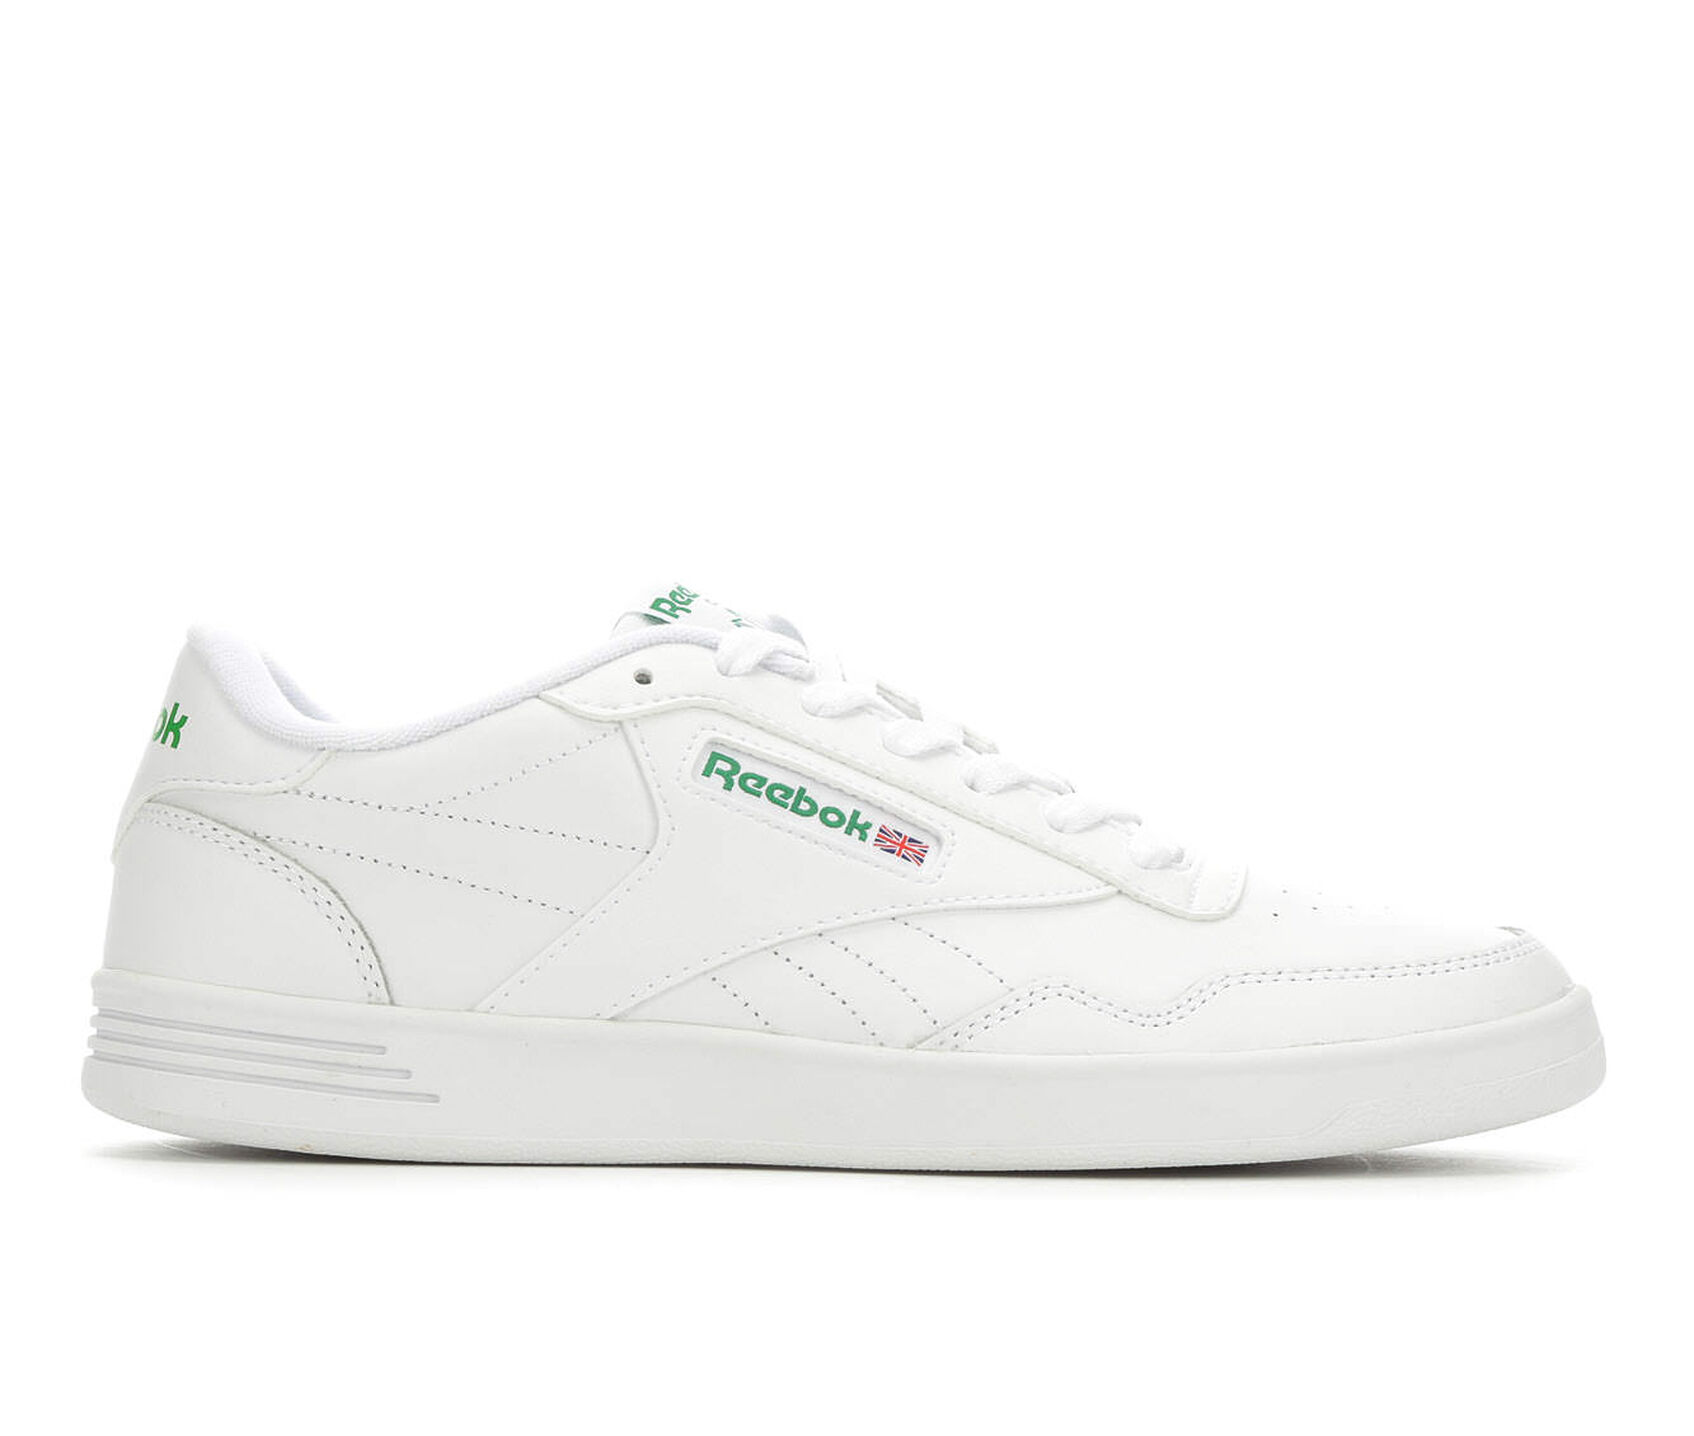 d1502b5d13544 Men  39 s Reebok Club MEMT Tennis Shoes. Previous